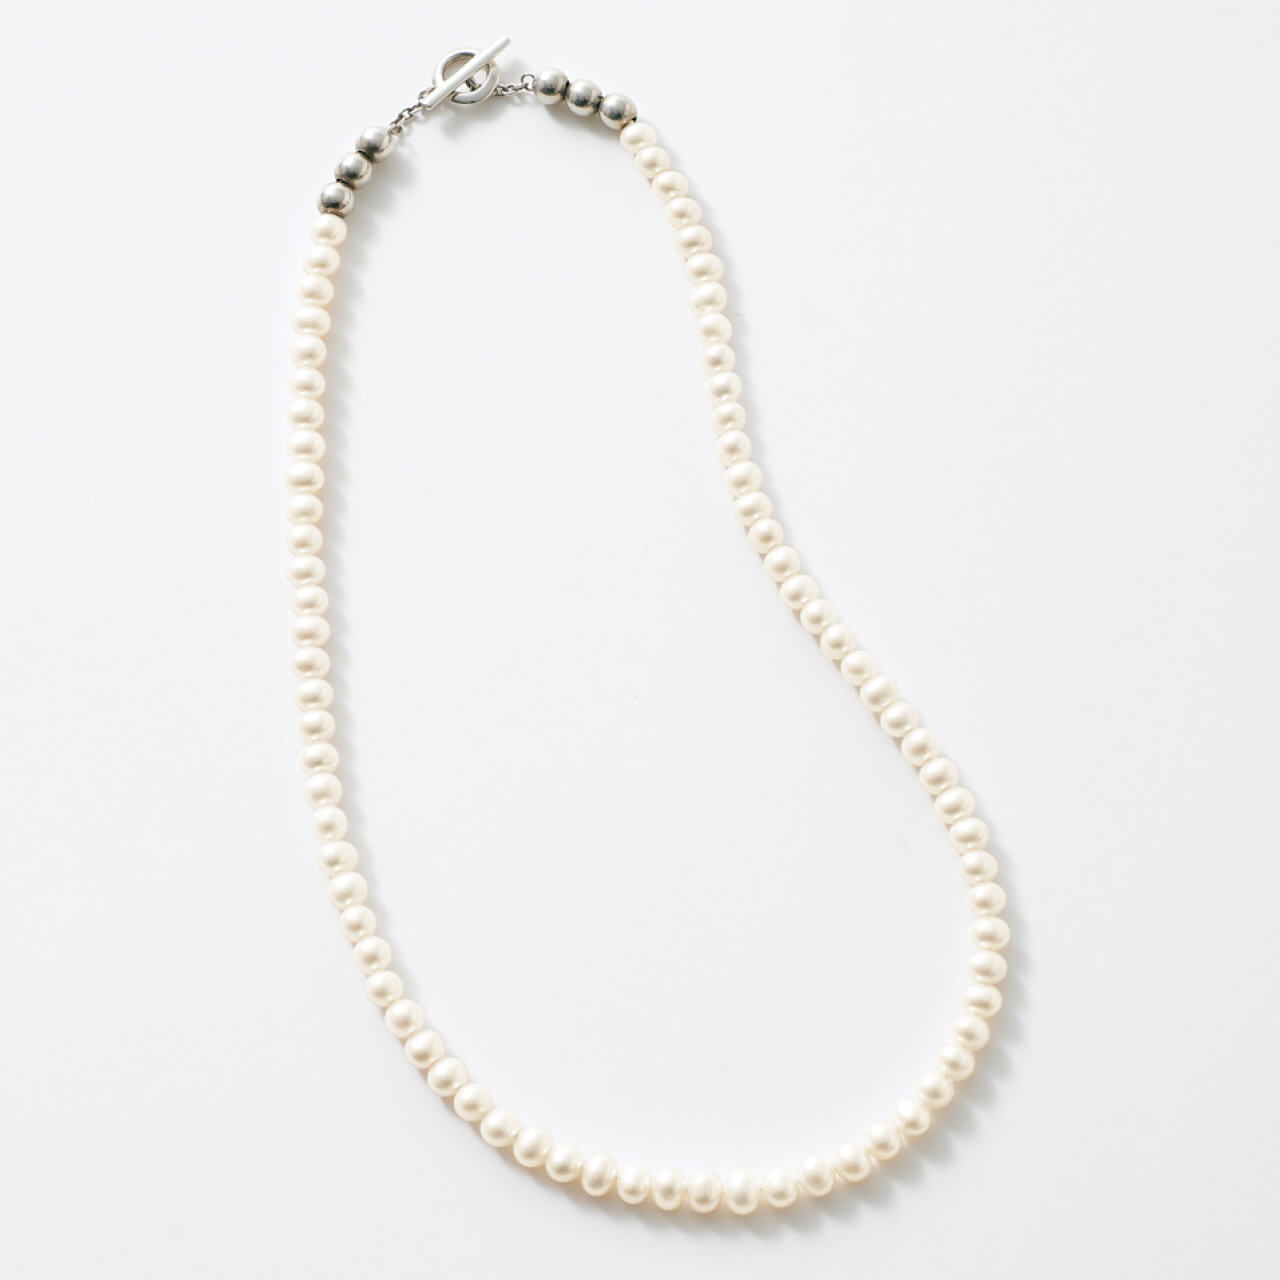 Sympathy of soul style シンパシー オブ ソウル スタイル Pearl Beads T-bar Necklace ¥24200